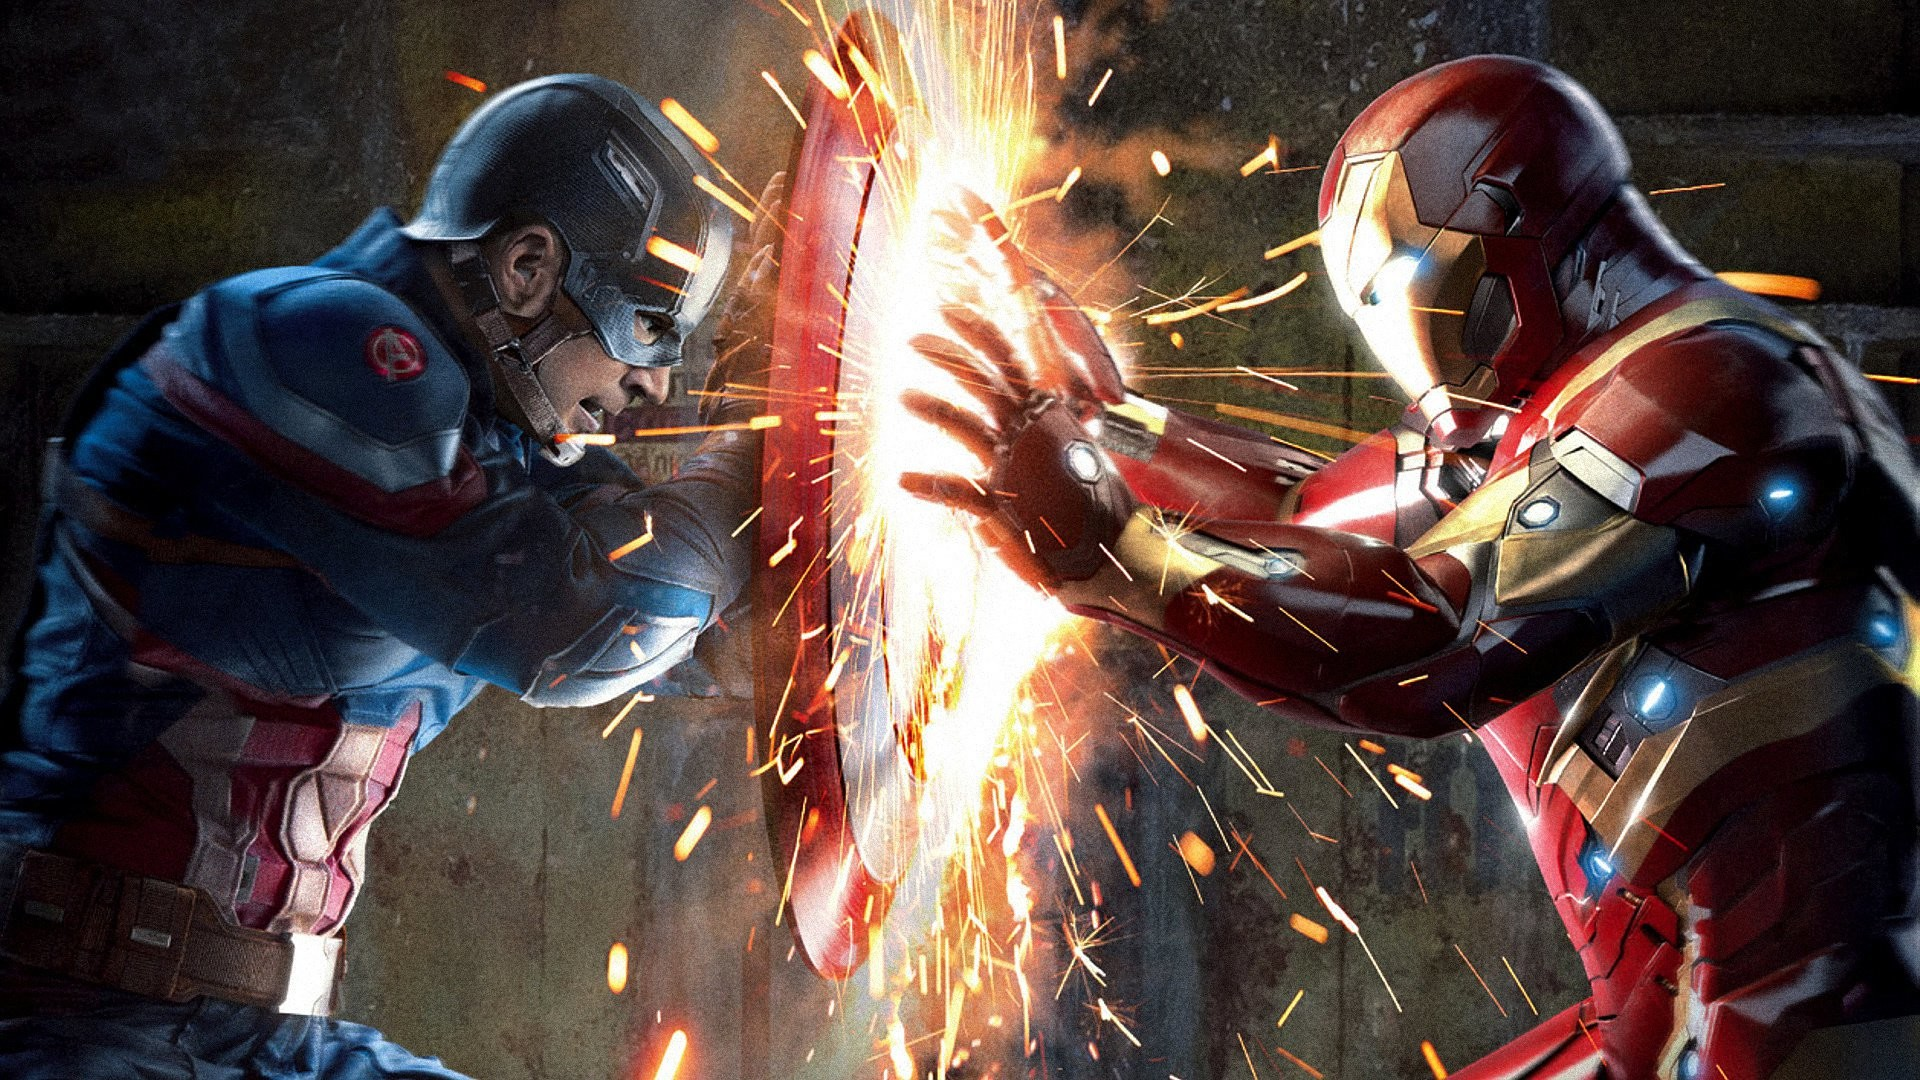 1920x1080 0 The Avengers Captain America HTC hd wallpaper captain america wallpaper HD